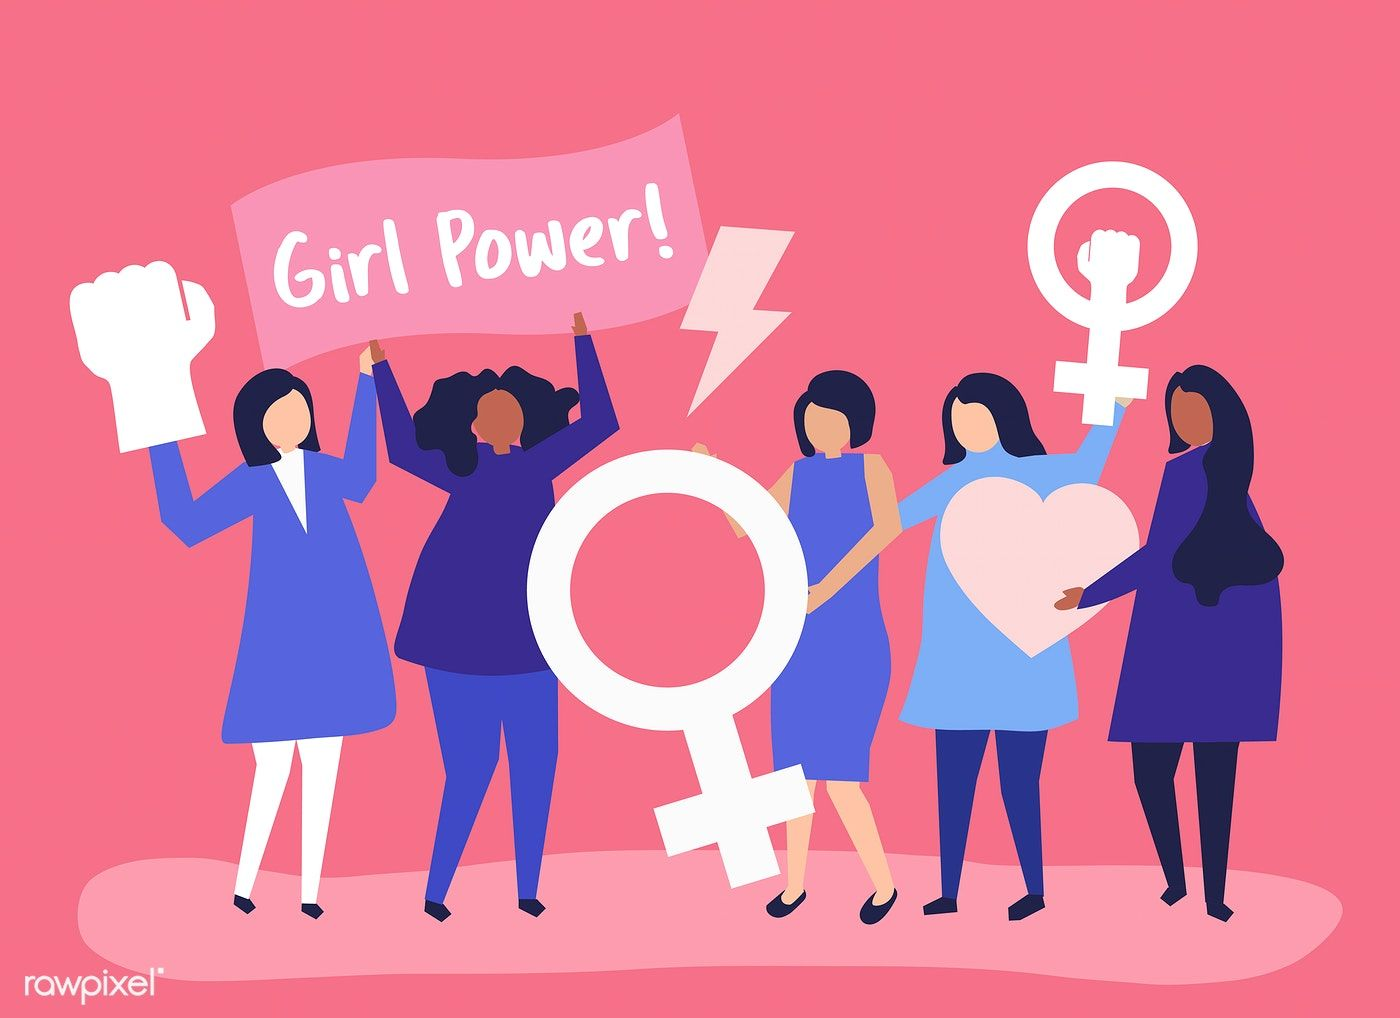 Feminists Supporting Gender Equality With A Peaceful Rally Free Image By Rawpixel Com Aum Gender Equality Equality Feminist